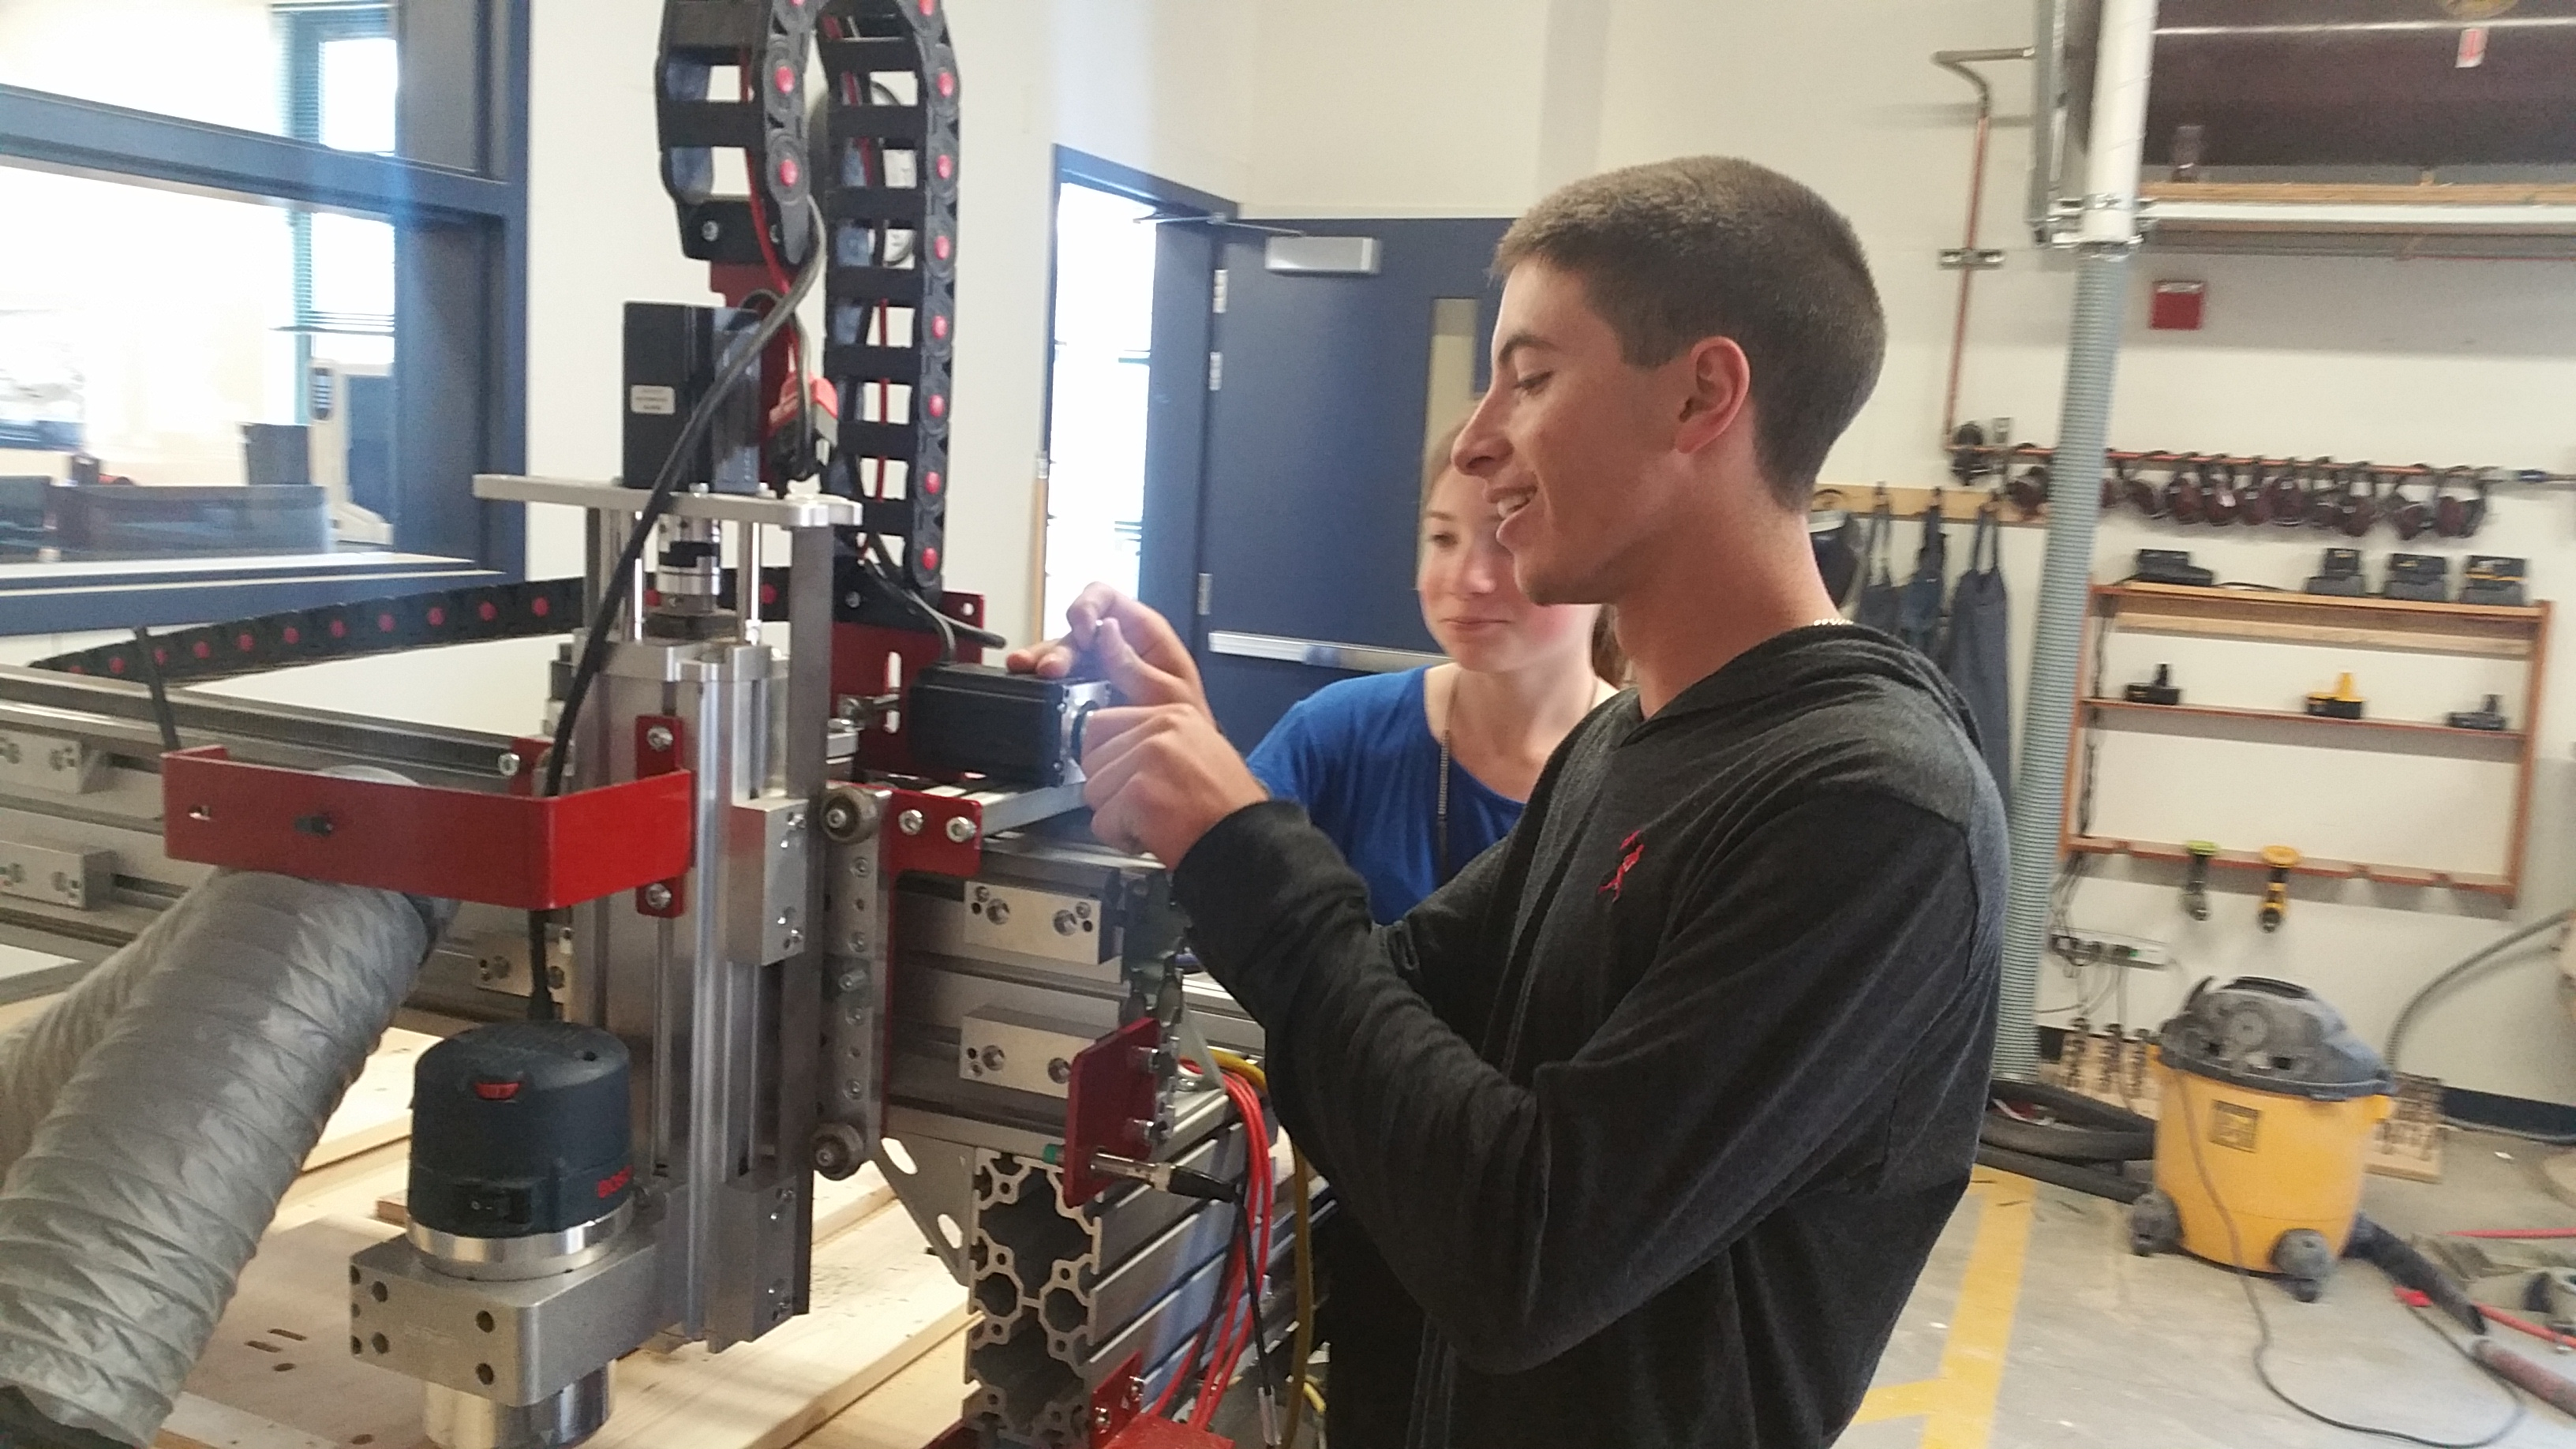 Engineering students at NTHS working on a machine